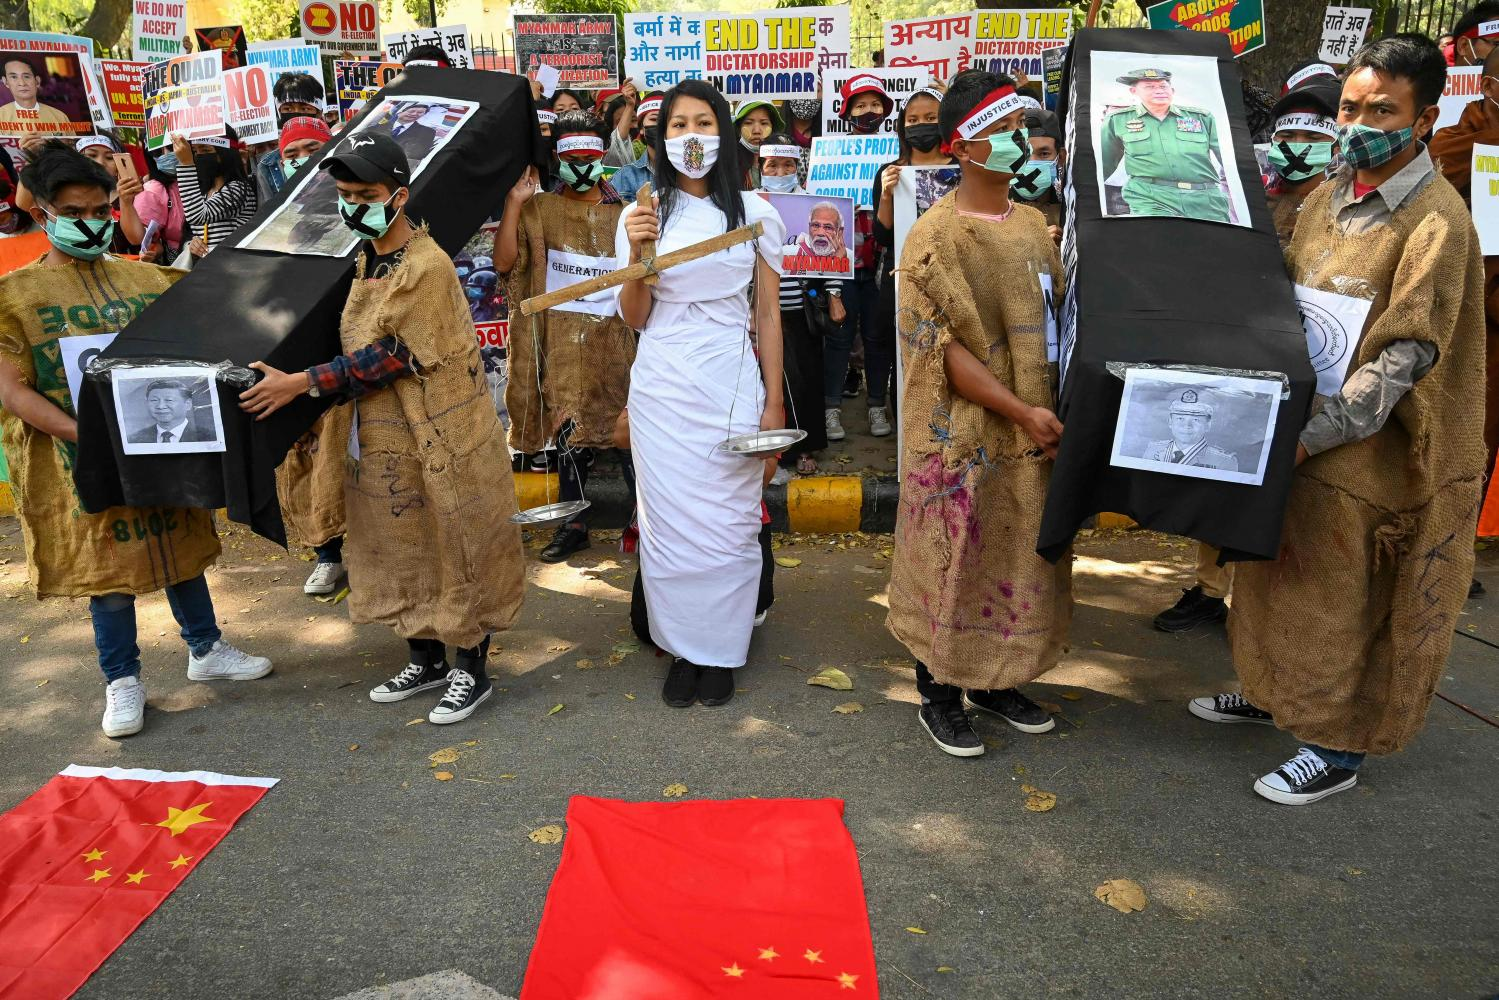 Protesters hold coffins displaying a picture of Chinese President Xi Jinping, left, and Myanmar military chief Senior General Min Aung Hlaing during a demonstration in New Delhi on March 3, to protest against the military coup in Myanmar.AFP